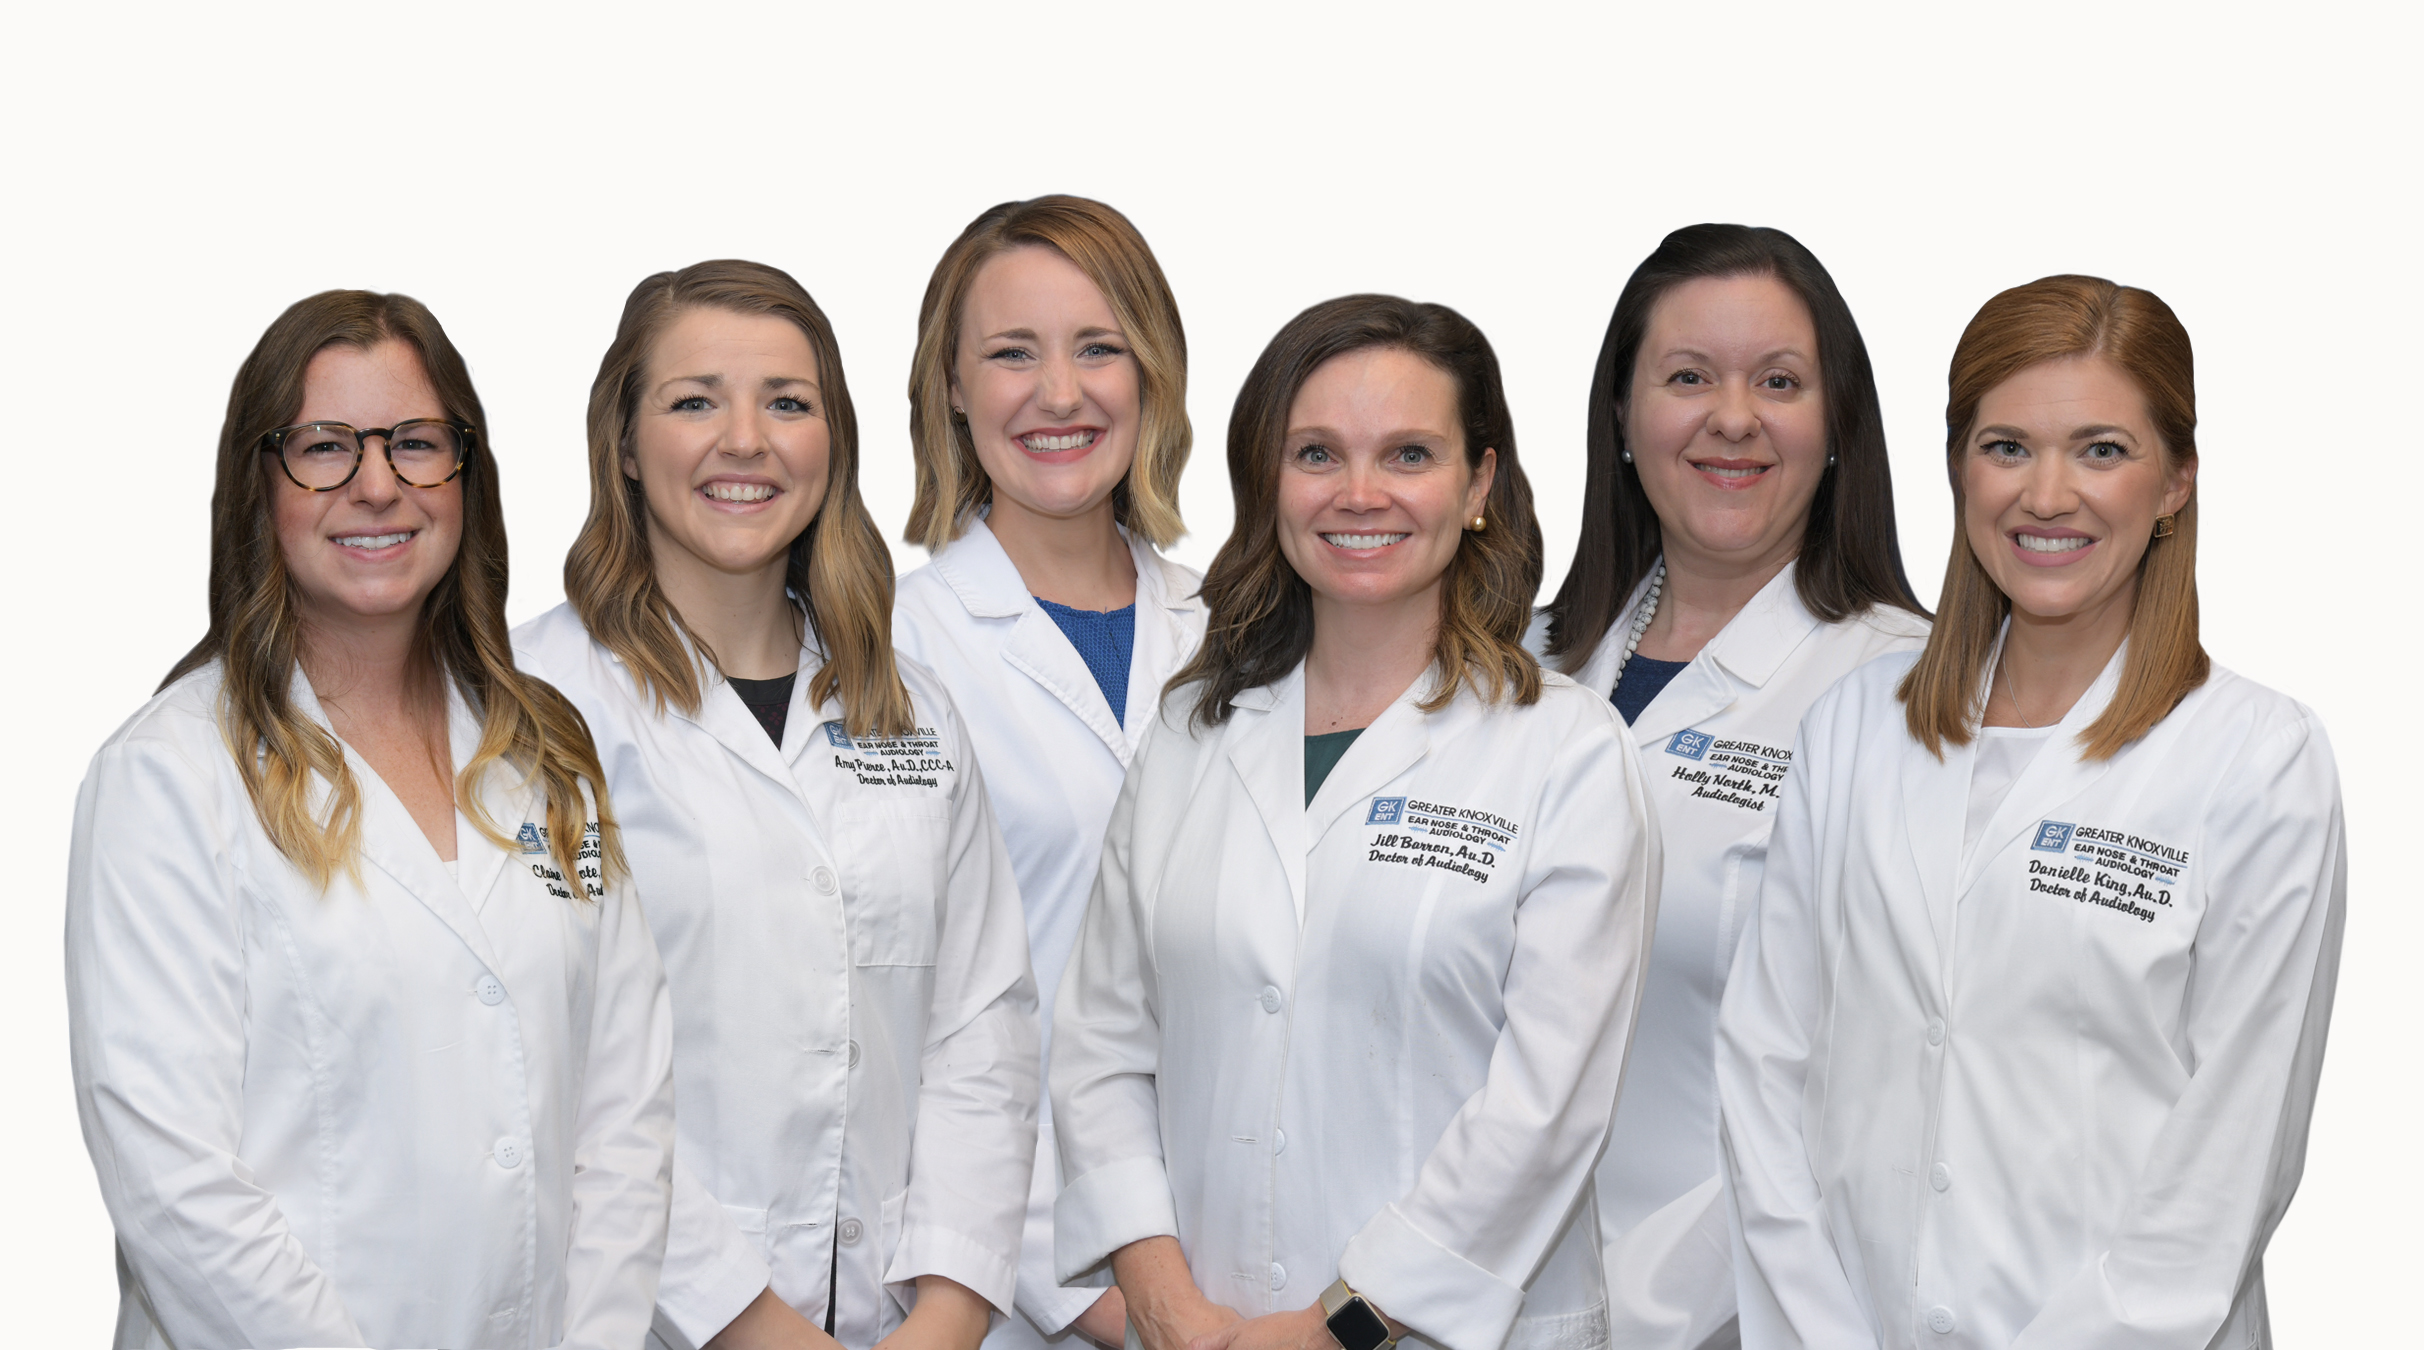 Audiology - Greater Knoxville ENT - Knoxville, TN